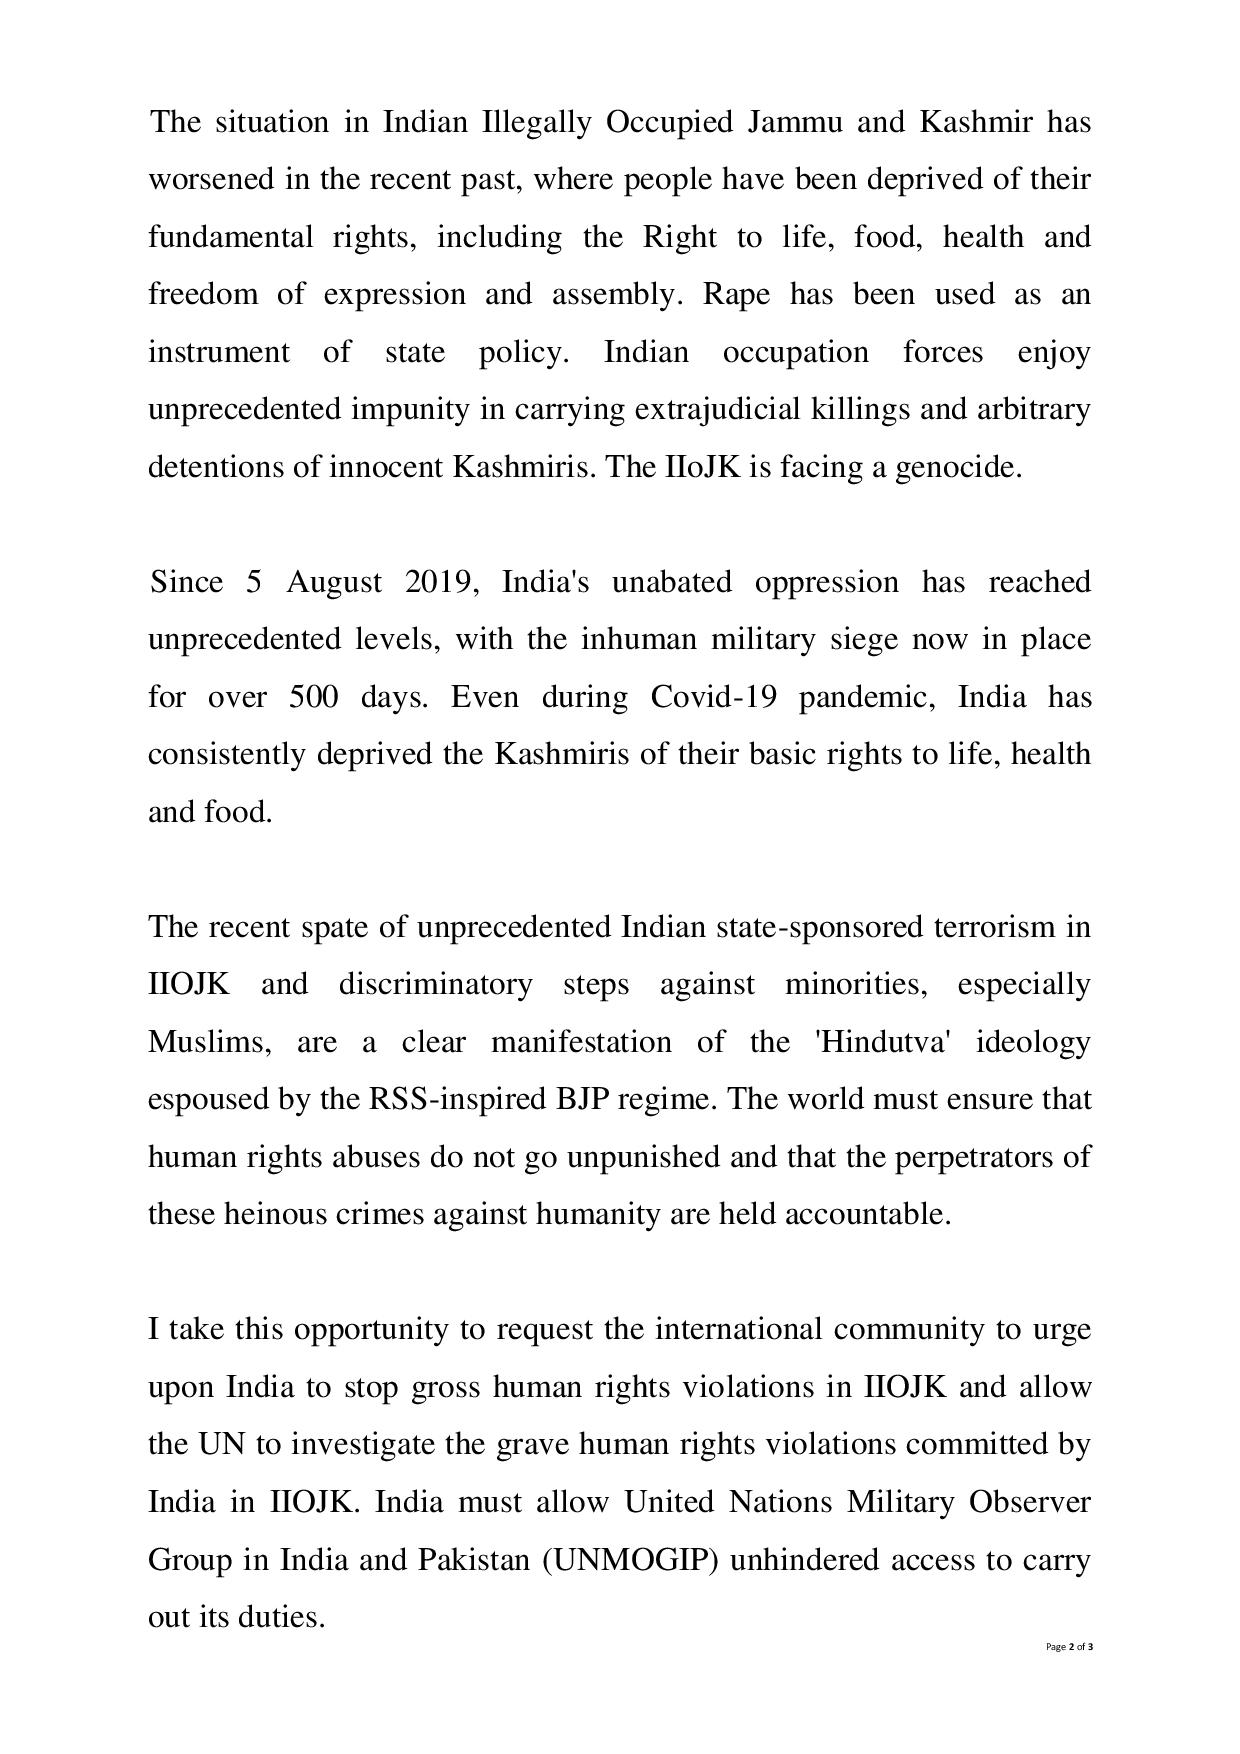 Jammu and Kashmir dispute